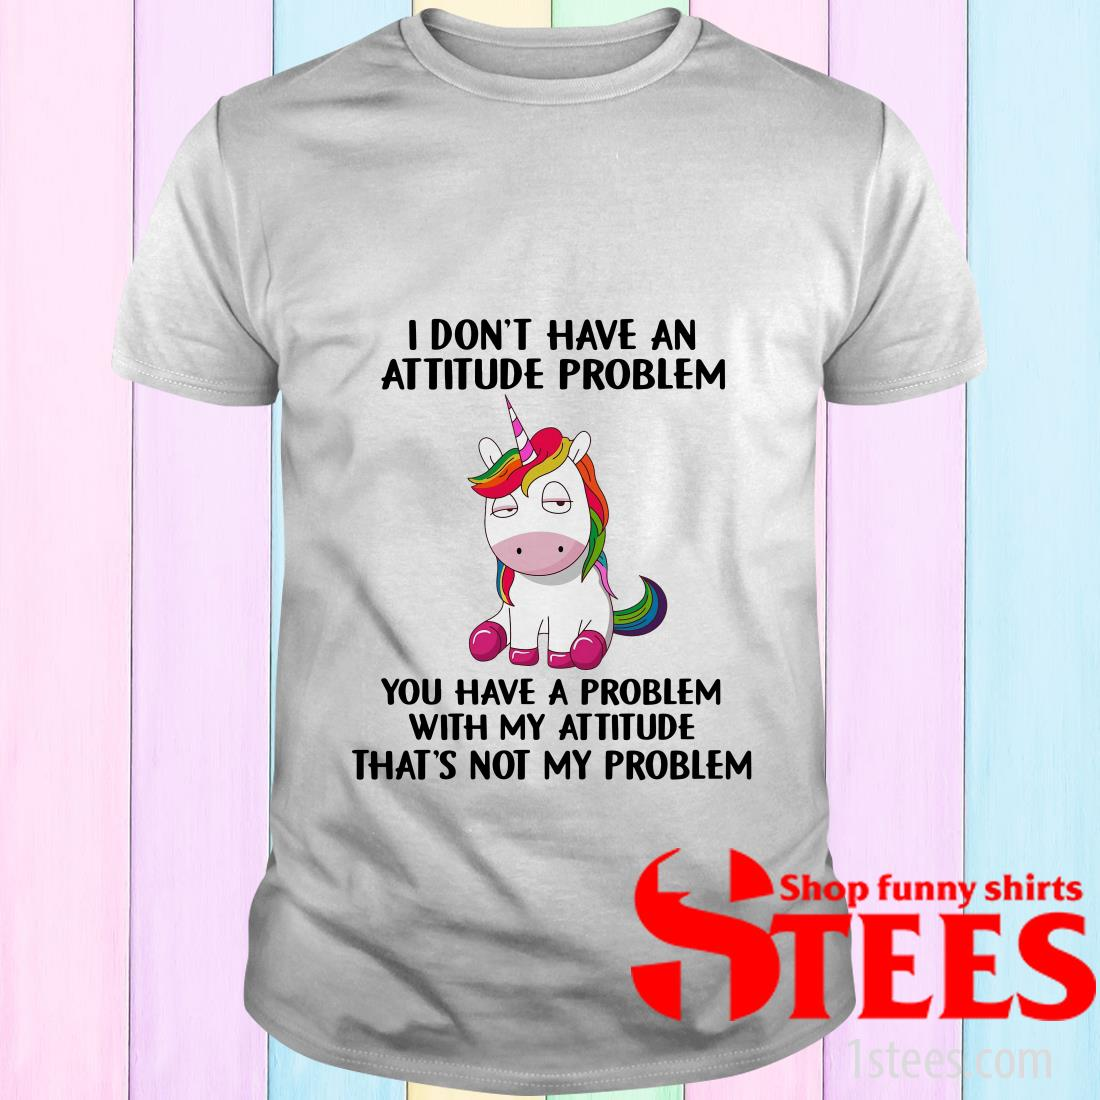 Unicorn I Don't Have An Attitude Problem You Have A Problem With My Attitude And That's Not My Problem Shirt